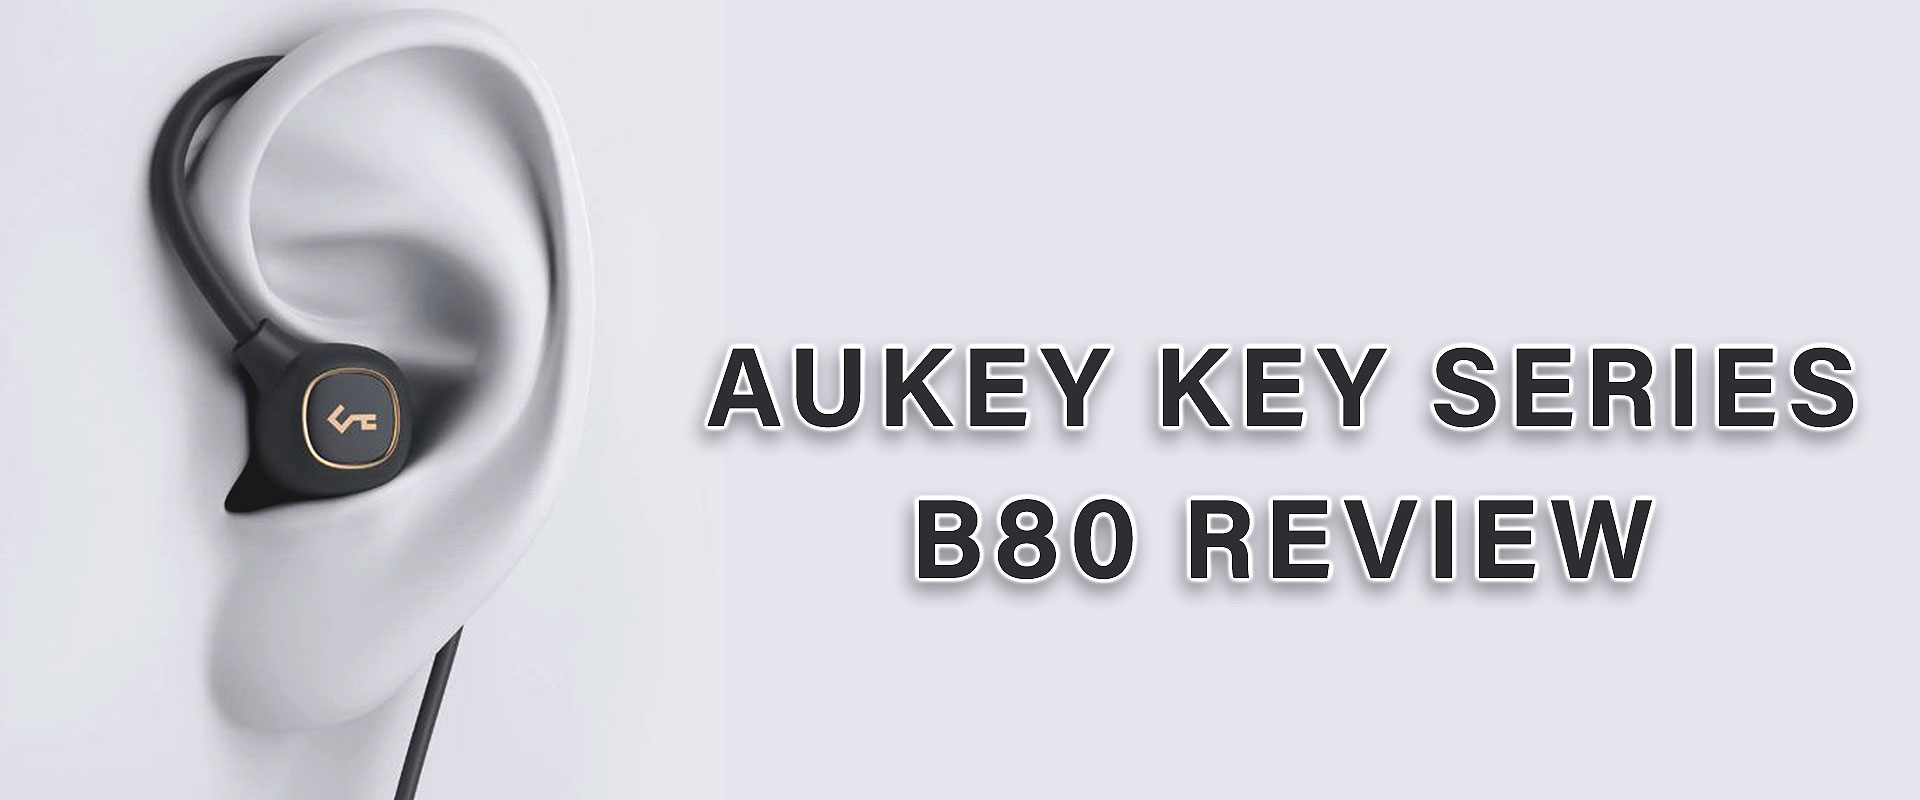 AUKEY Key Series B80